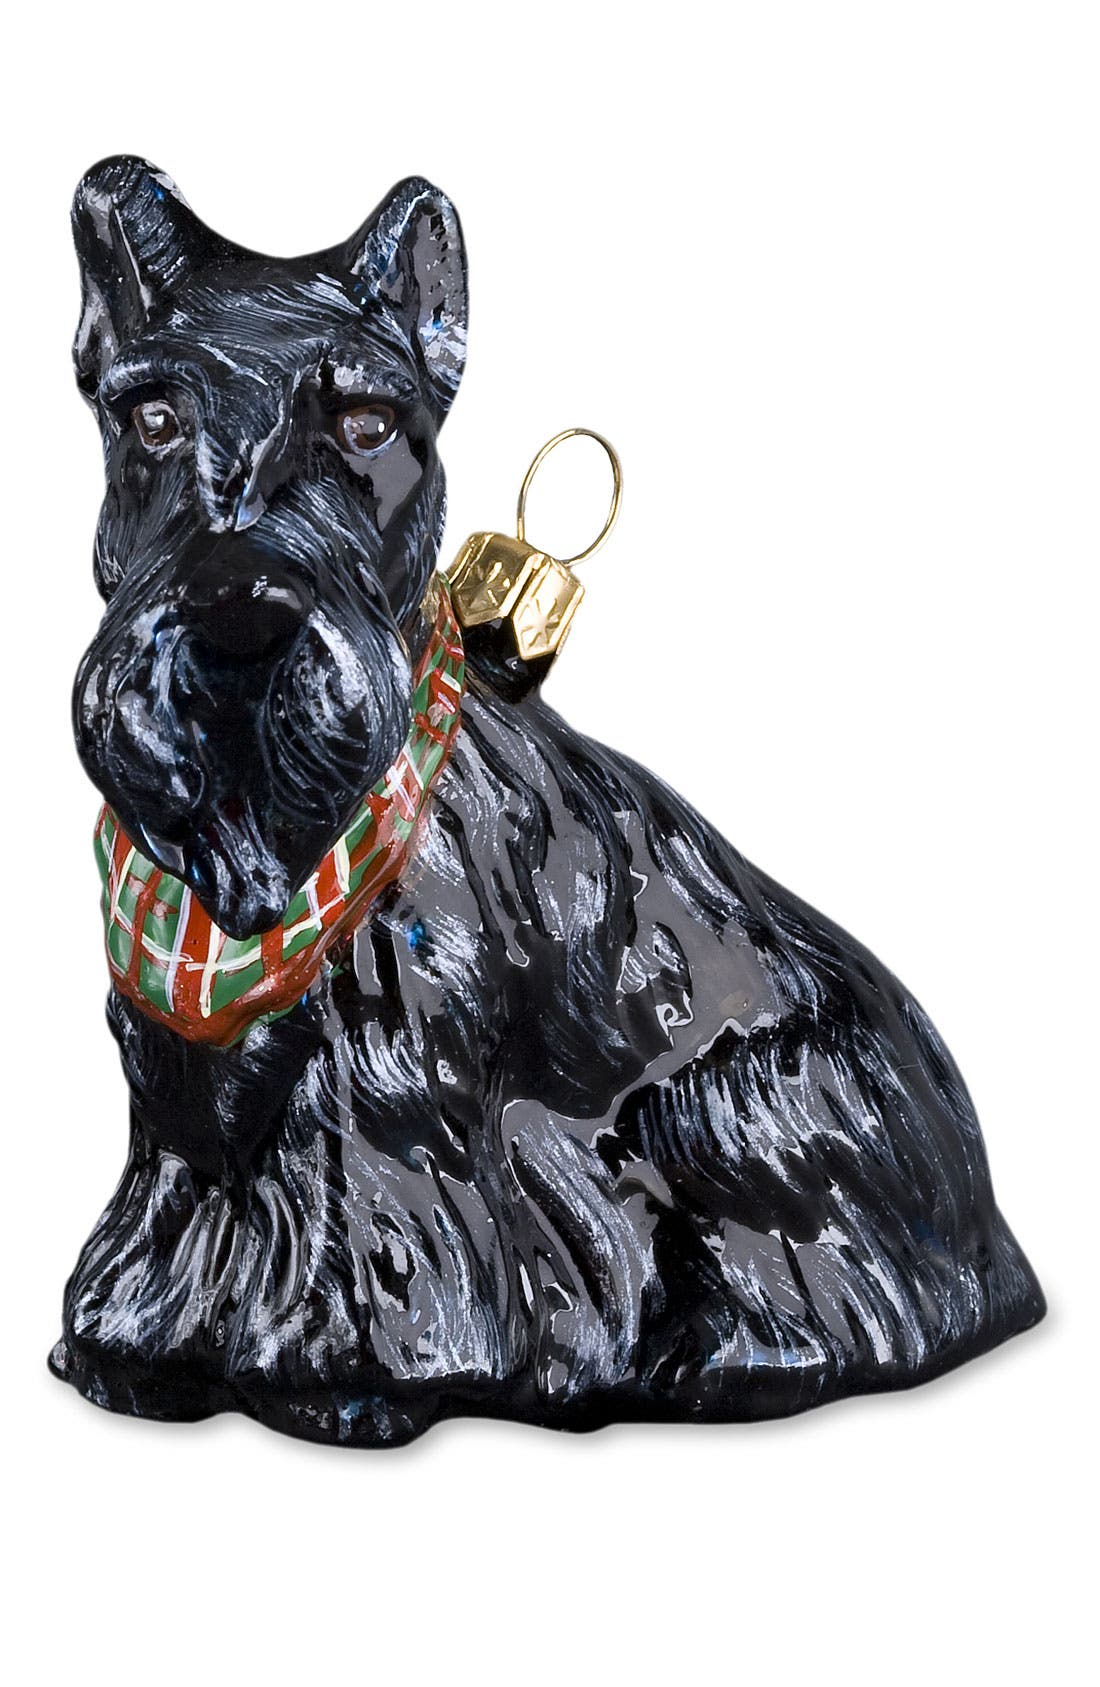 'Yorkie Puppy' Dog Ornament,                         Main,                         color, 960